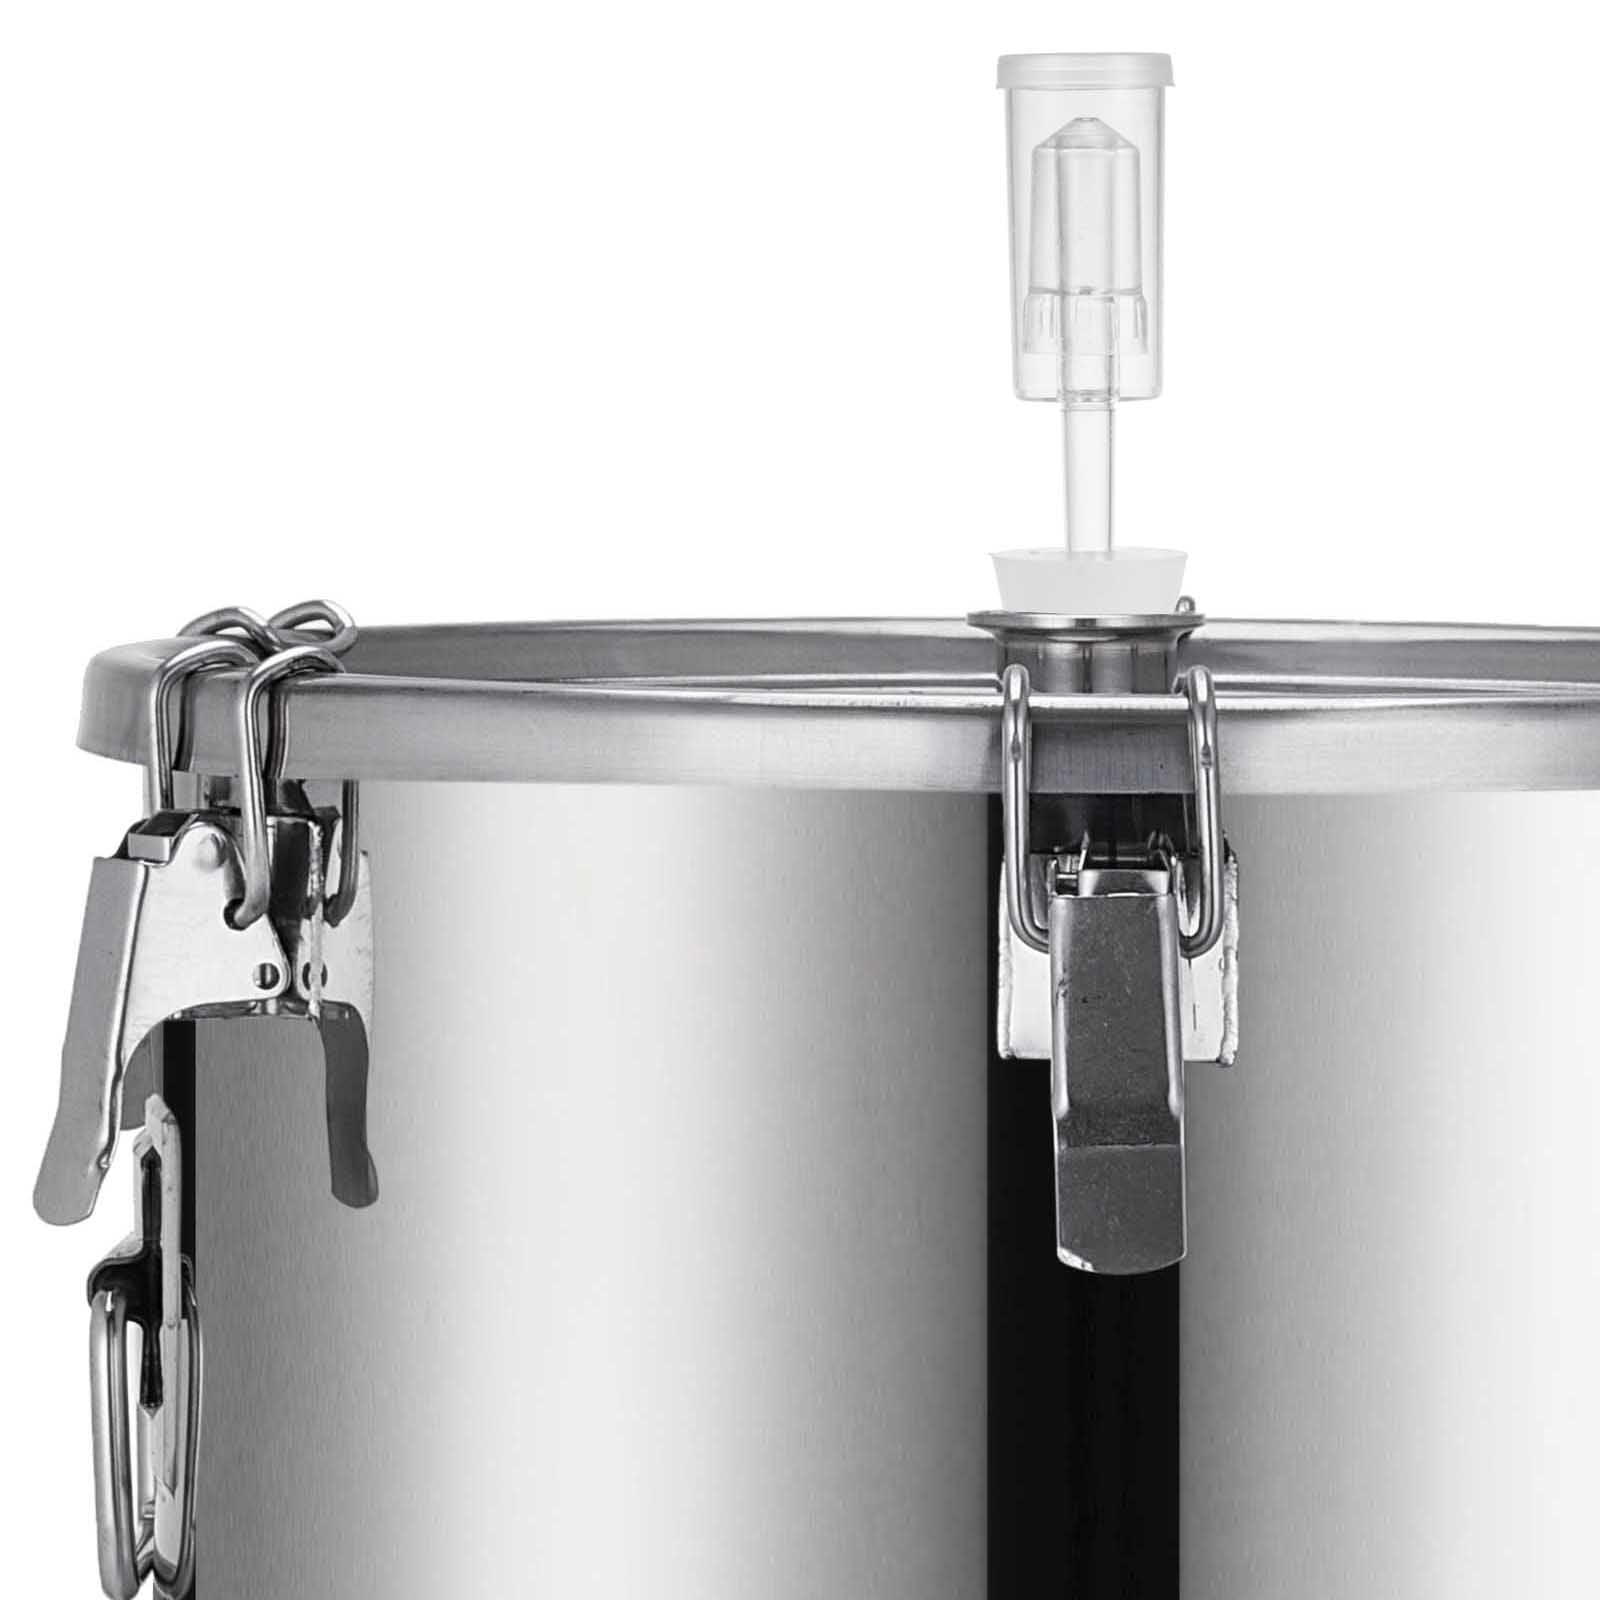 53l Wine Fermentation Bucket Fermenter With Thermometer 304 Stainless Steel